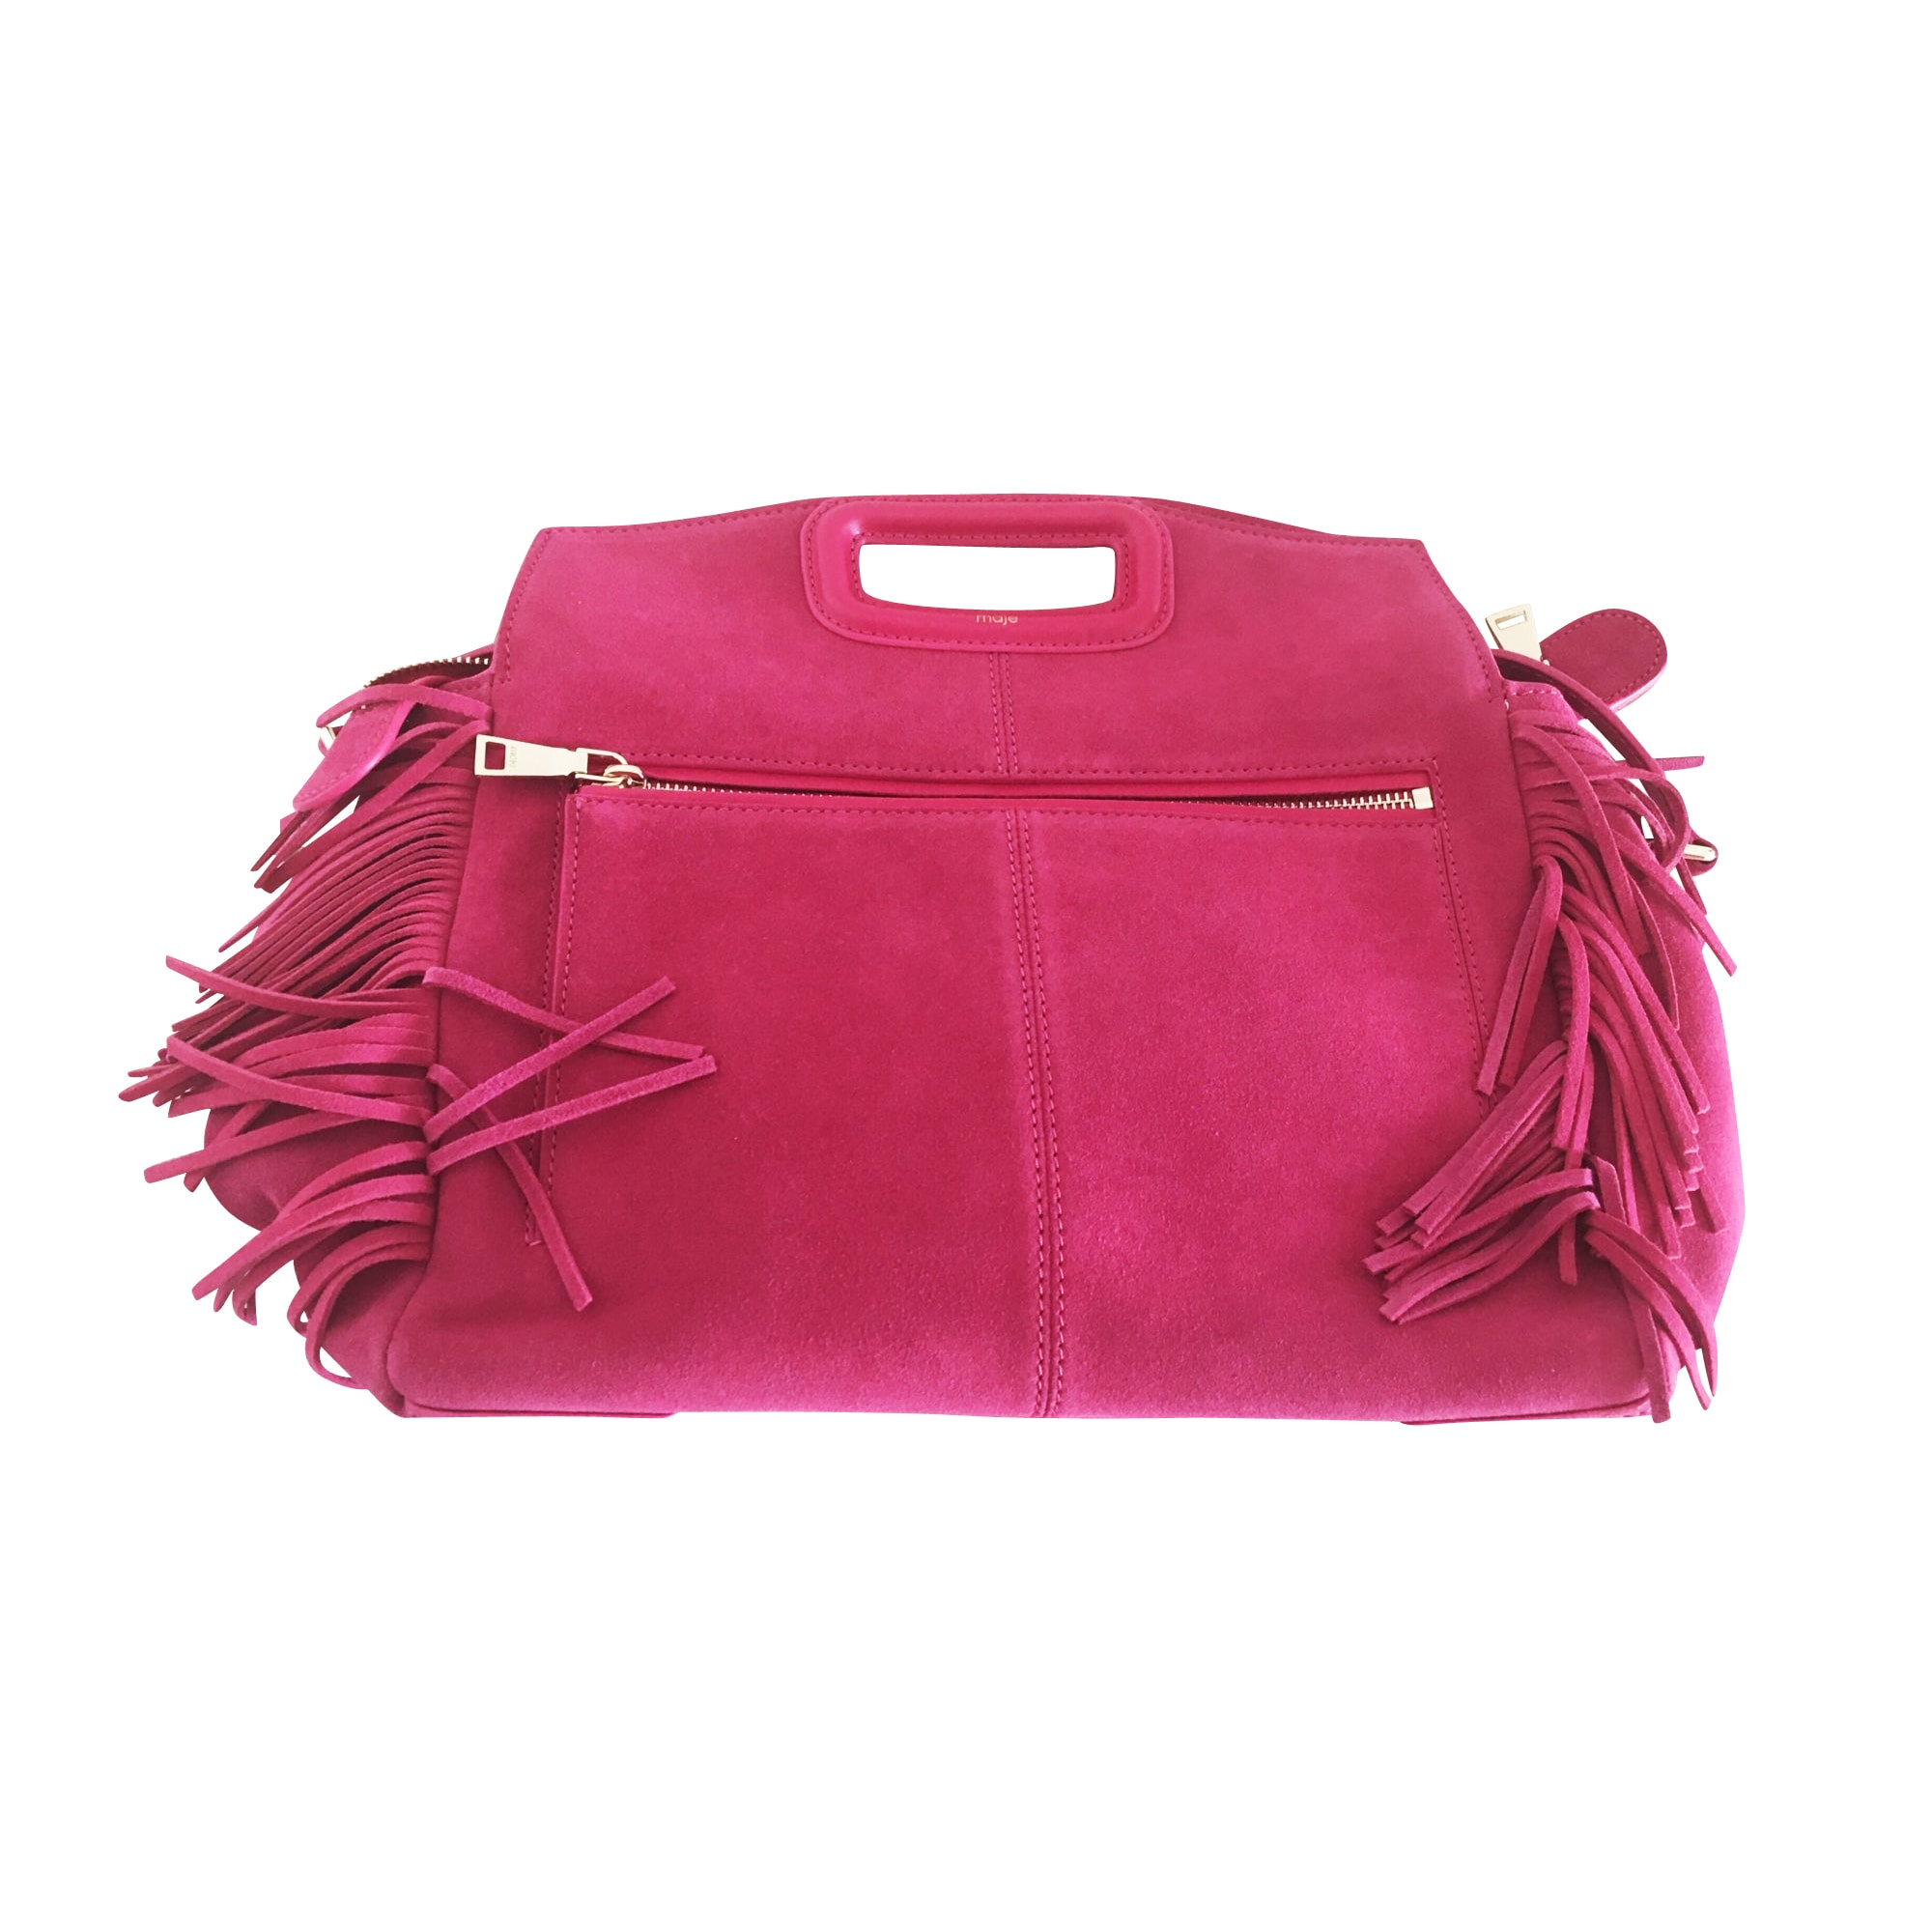 Leather Handbag MAJE Pink, fuchsia, light pink